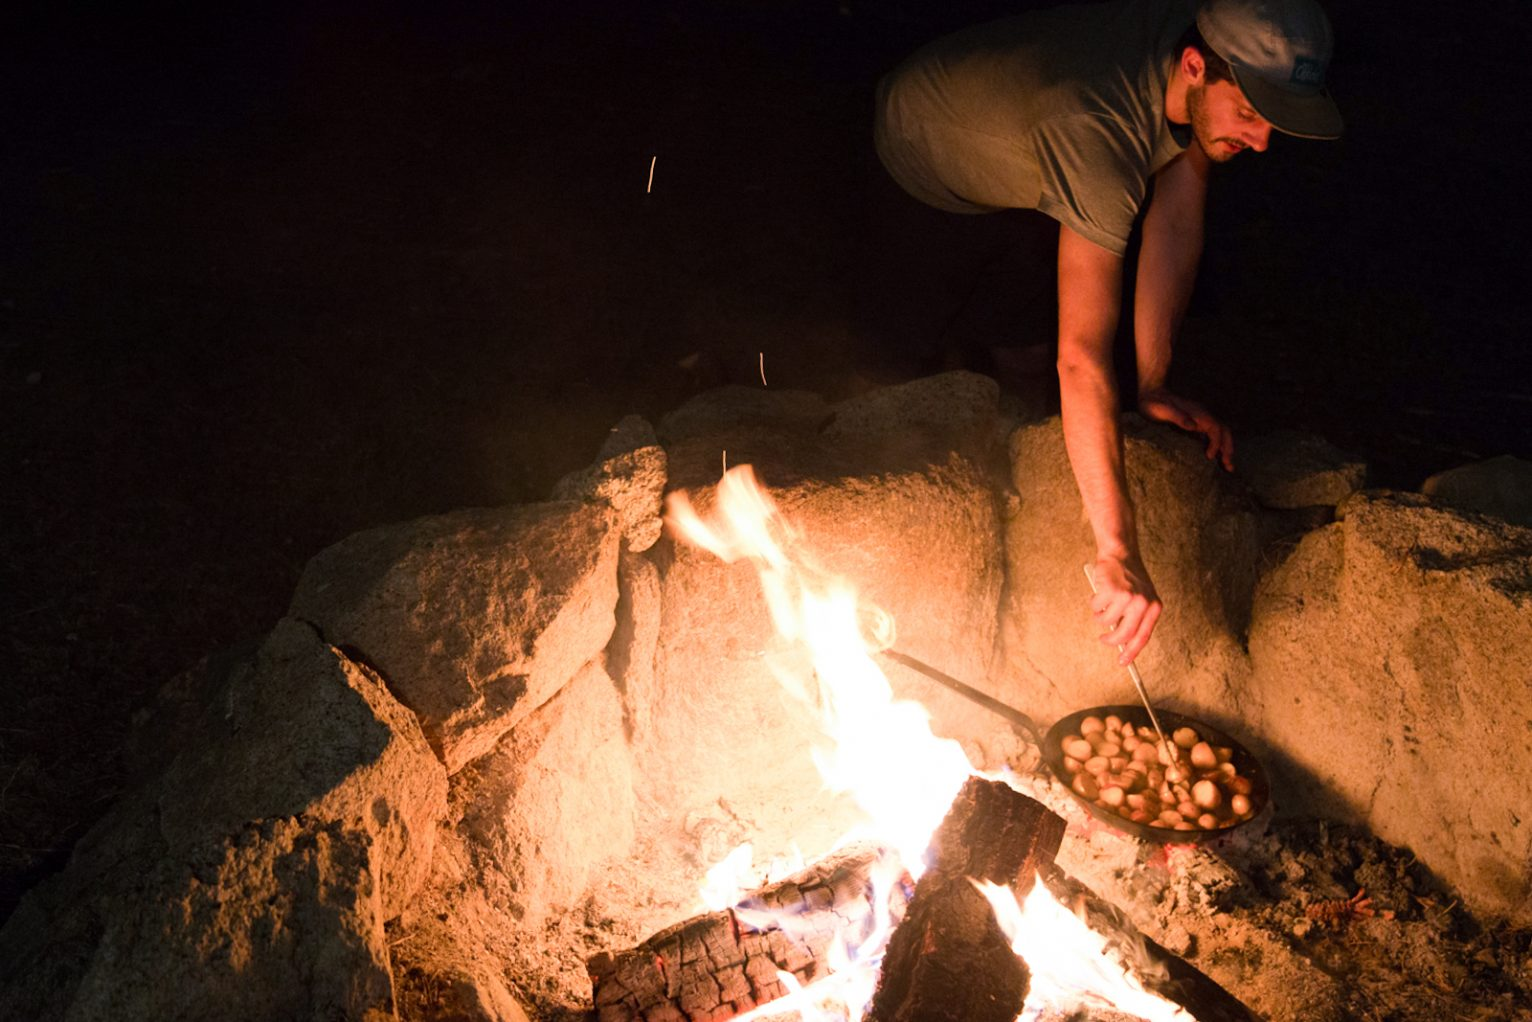 Josh Reeder-Esparza cooking potatoes over the fire